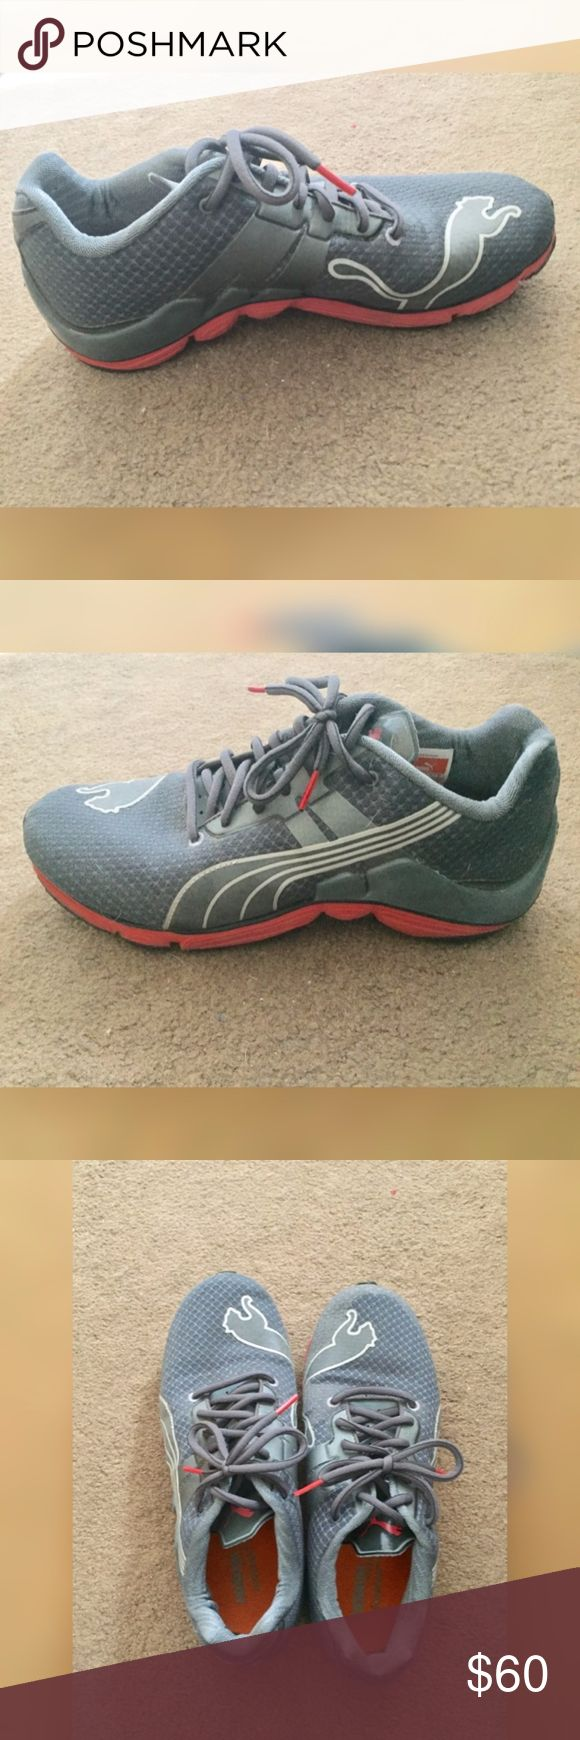 🔥SALE🔥 Men's Puma Running Shoes Men's Puma athletic shoes. Perfect for running and going to the gym.  Great condition.  Grey and Red. Puma Shoes Athletic Shoes